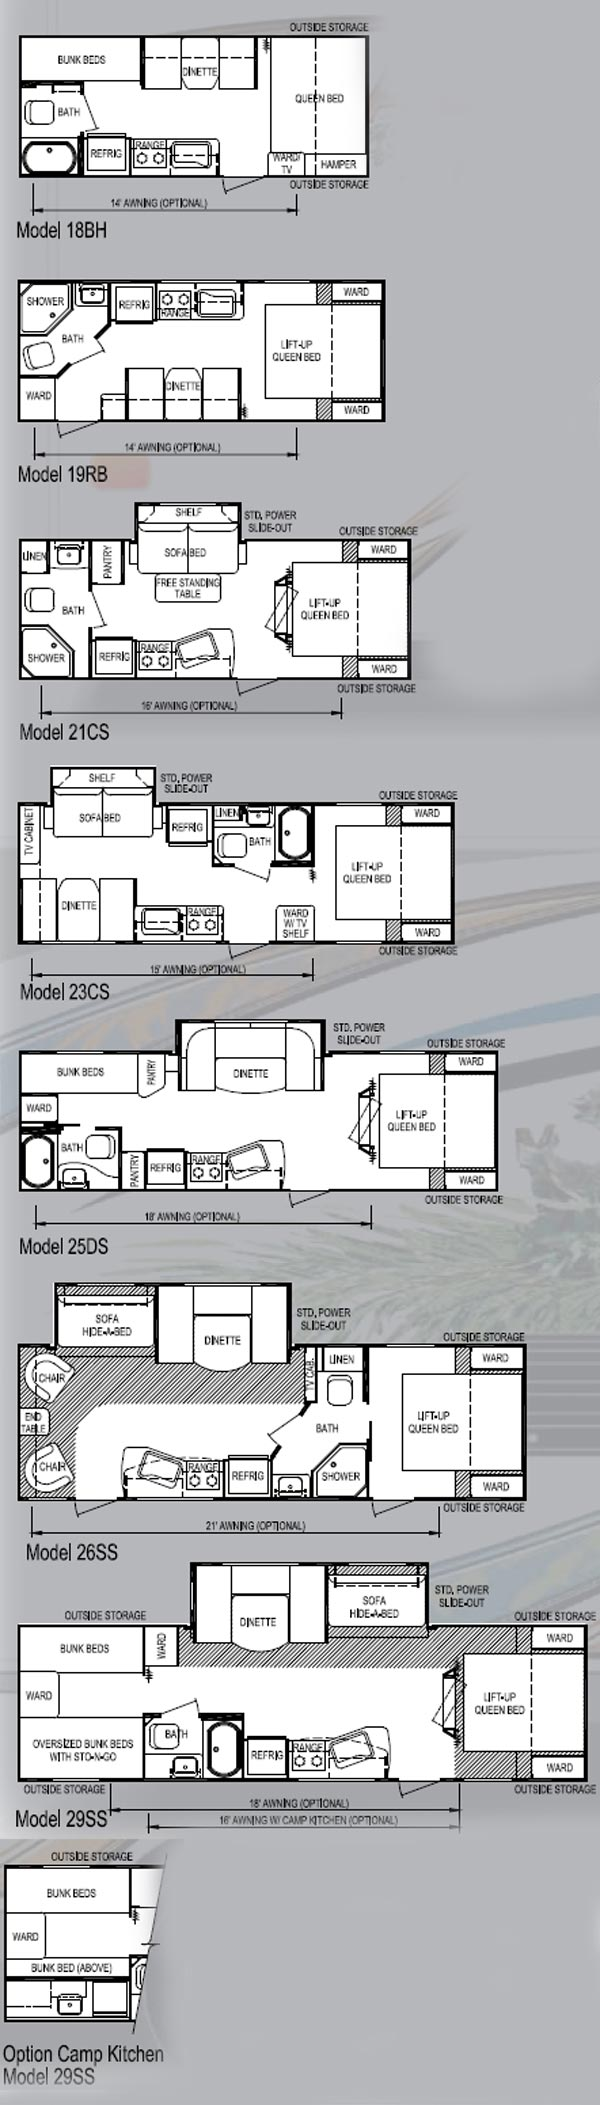 Skyline Koala travel trailer - 2012 floorplans